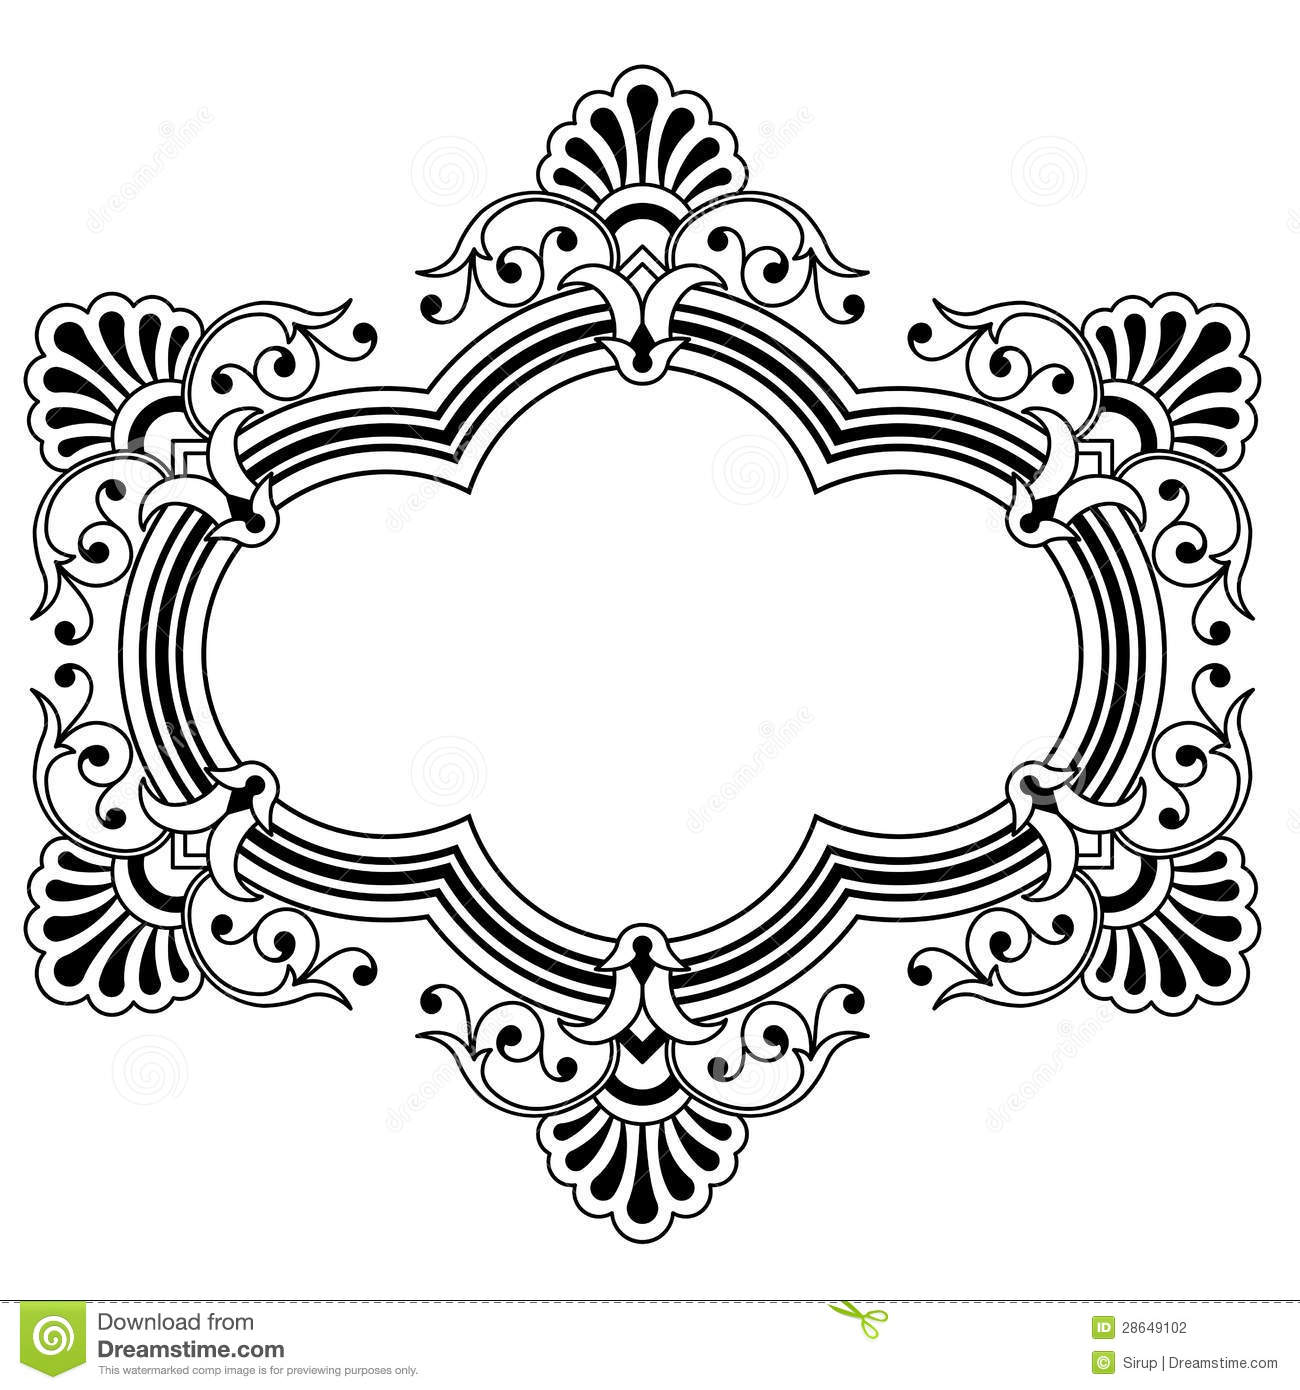 Floral Calligraphic Border Stock Vector Illustration Of